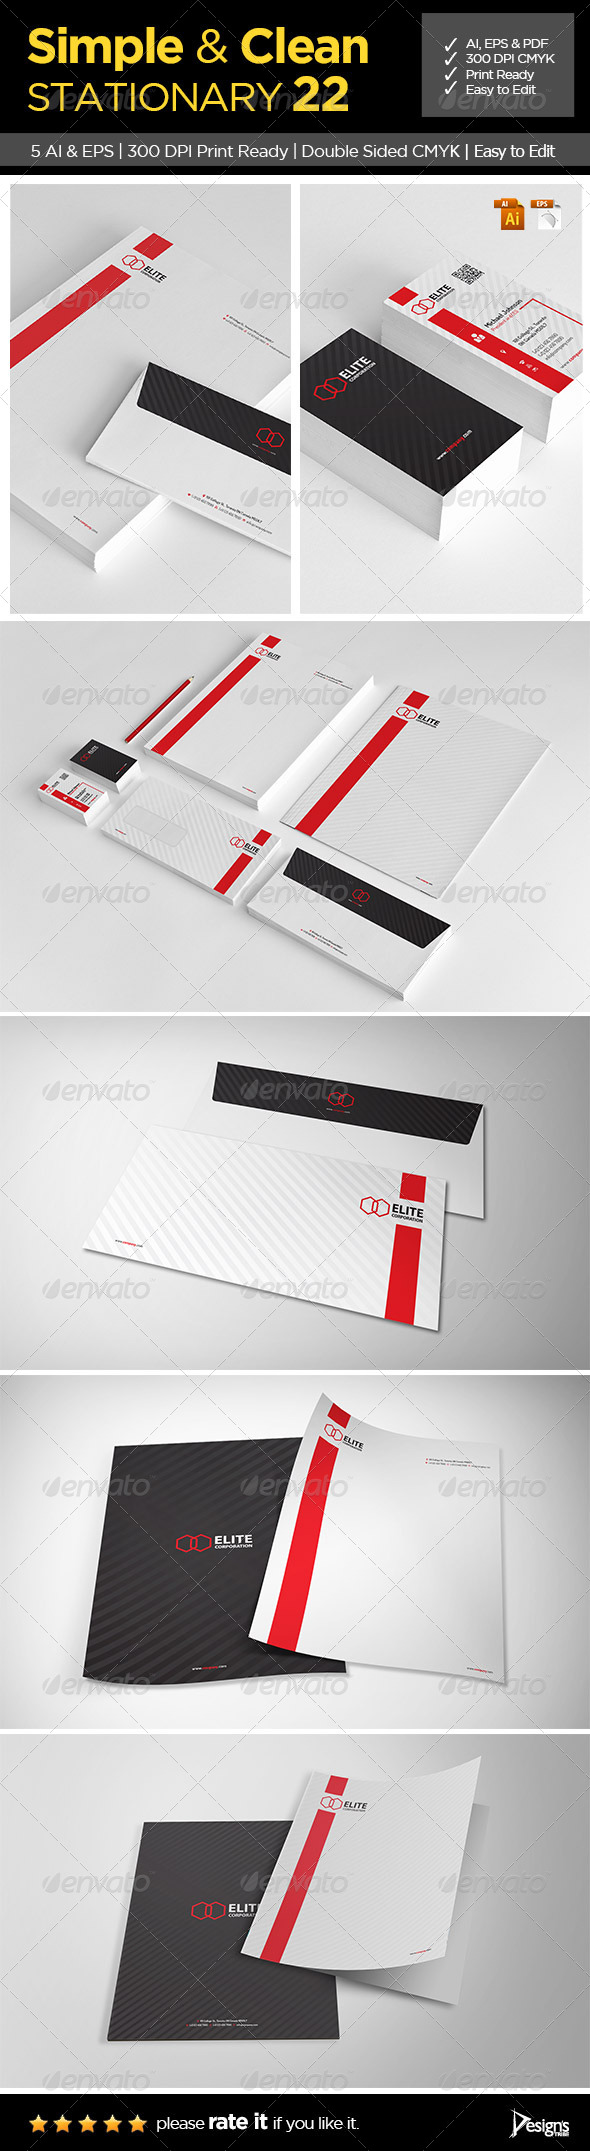 GraphicRiver Simple and Clean Stationary 22 6658449